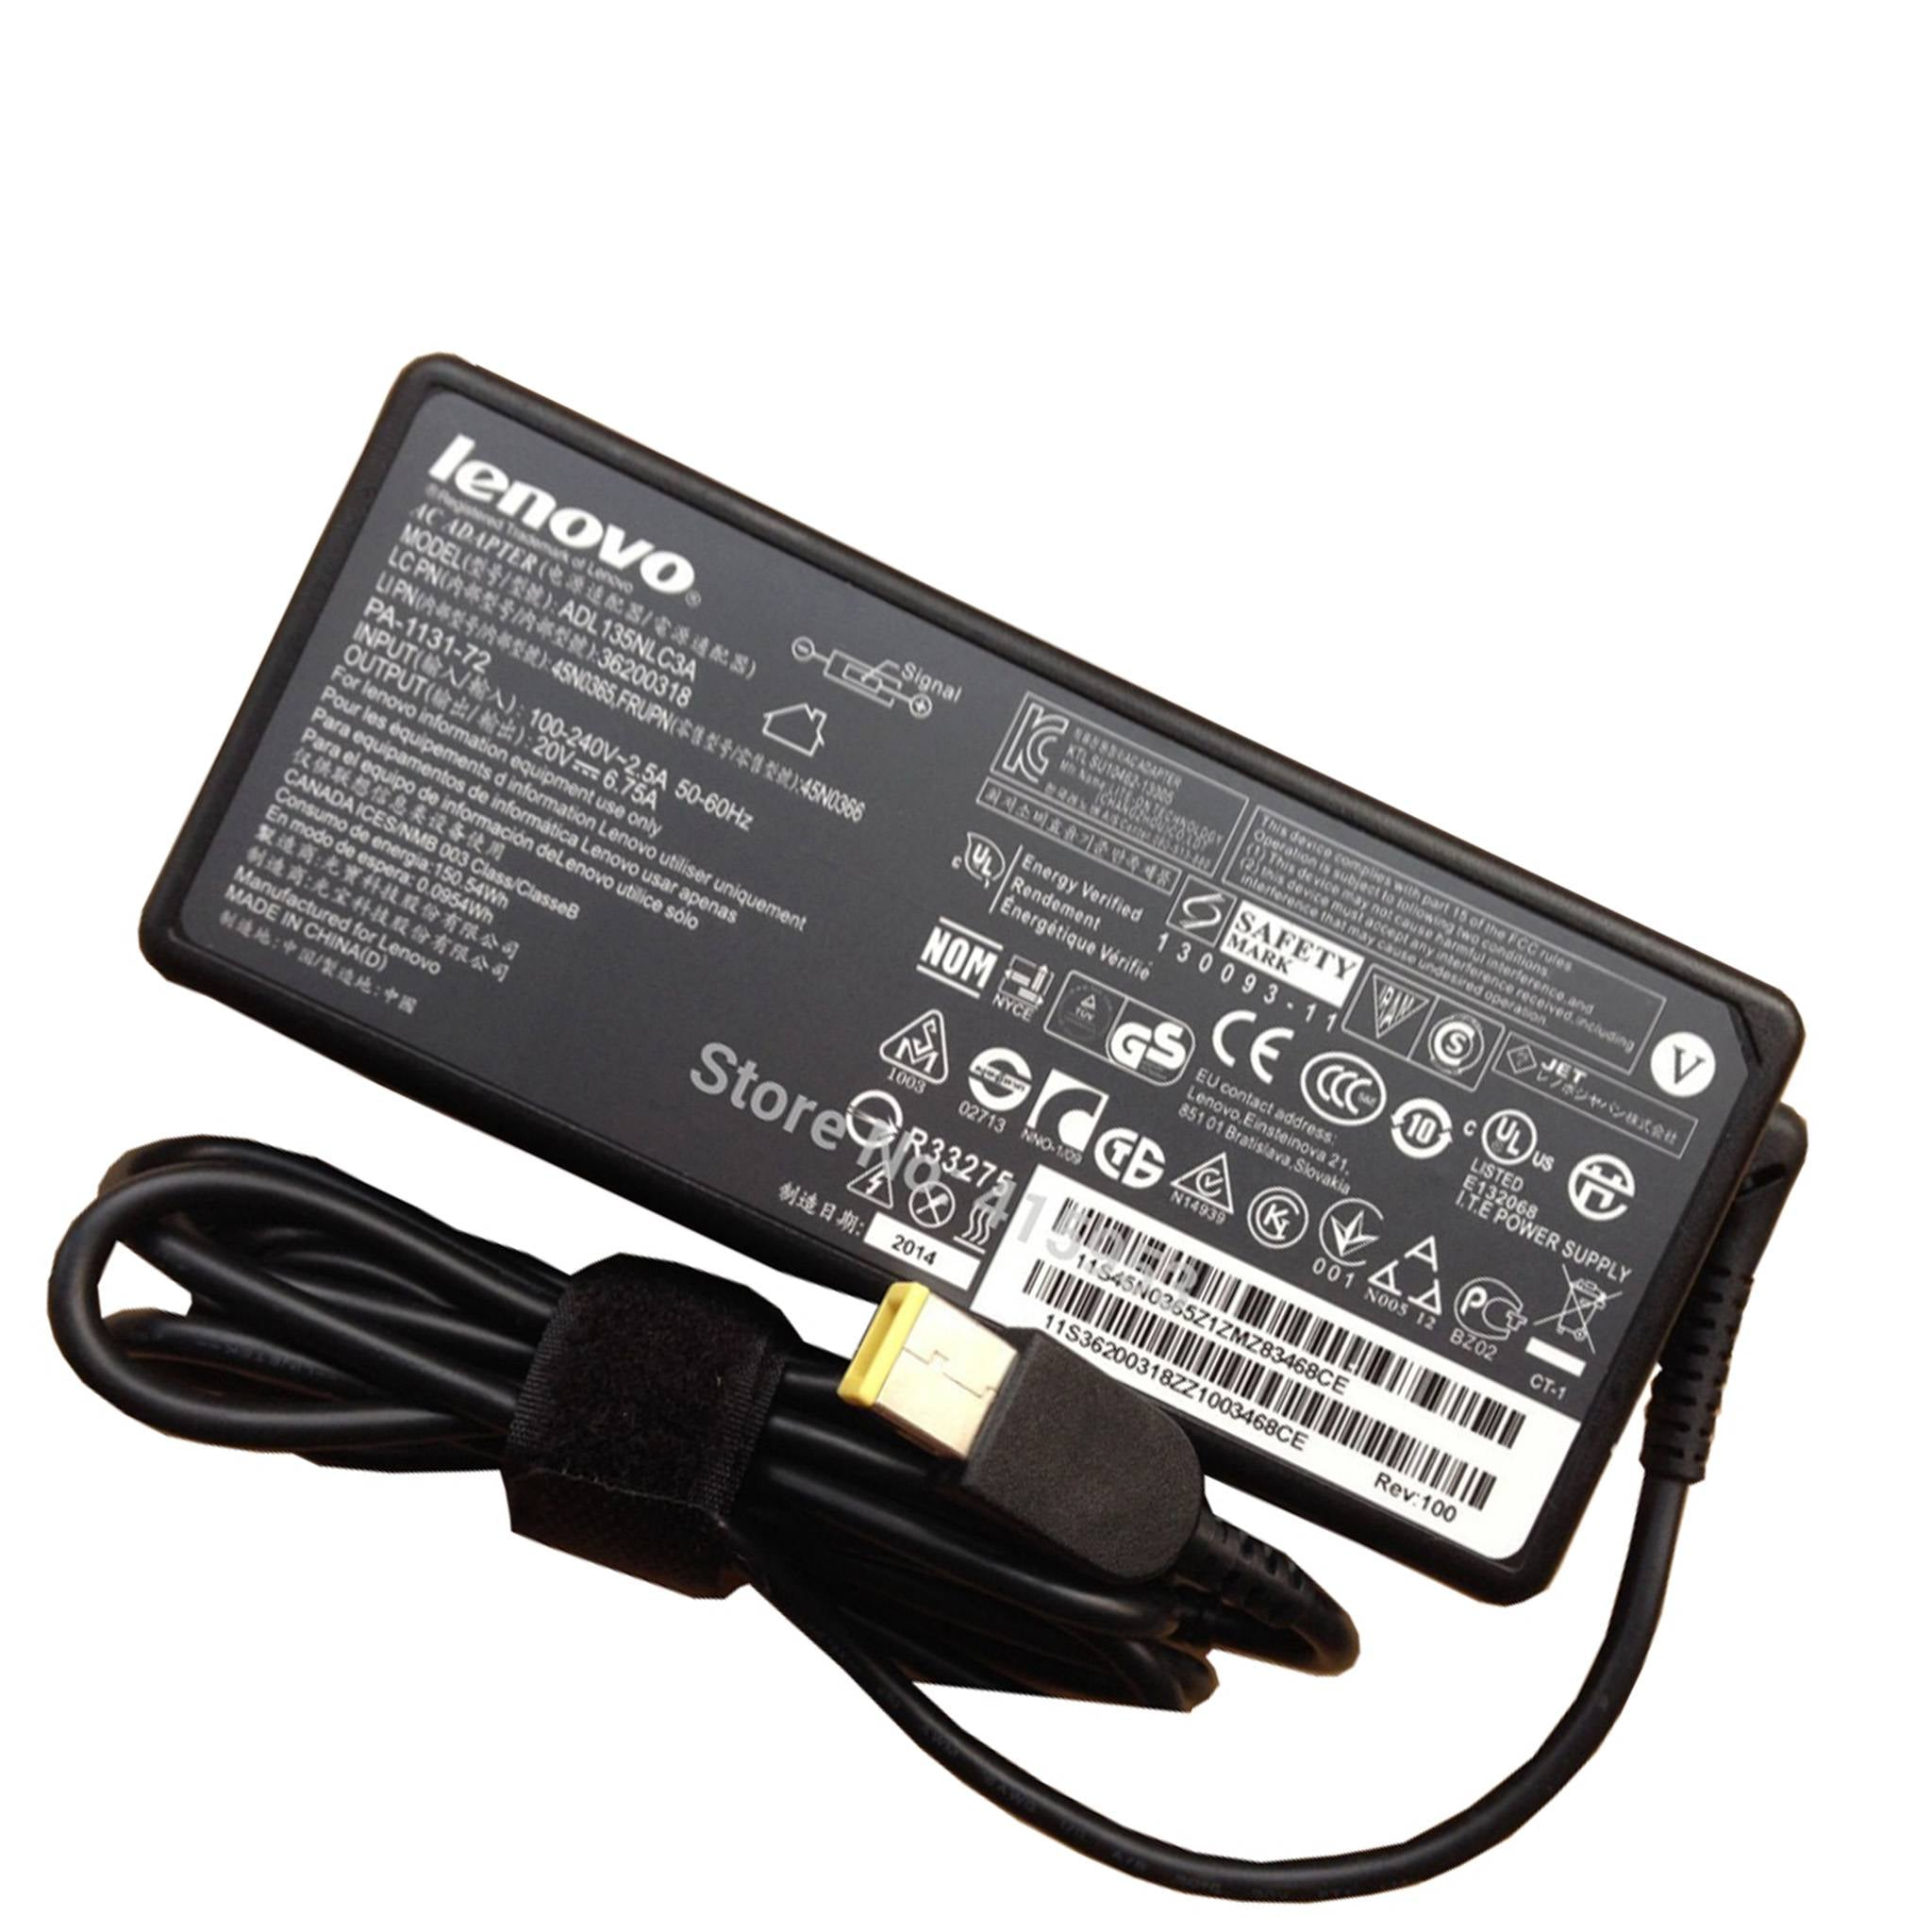 Lenovo 135W 20V 6.75A Original Laptop AC Adapter